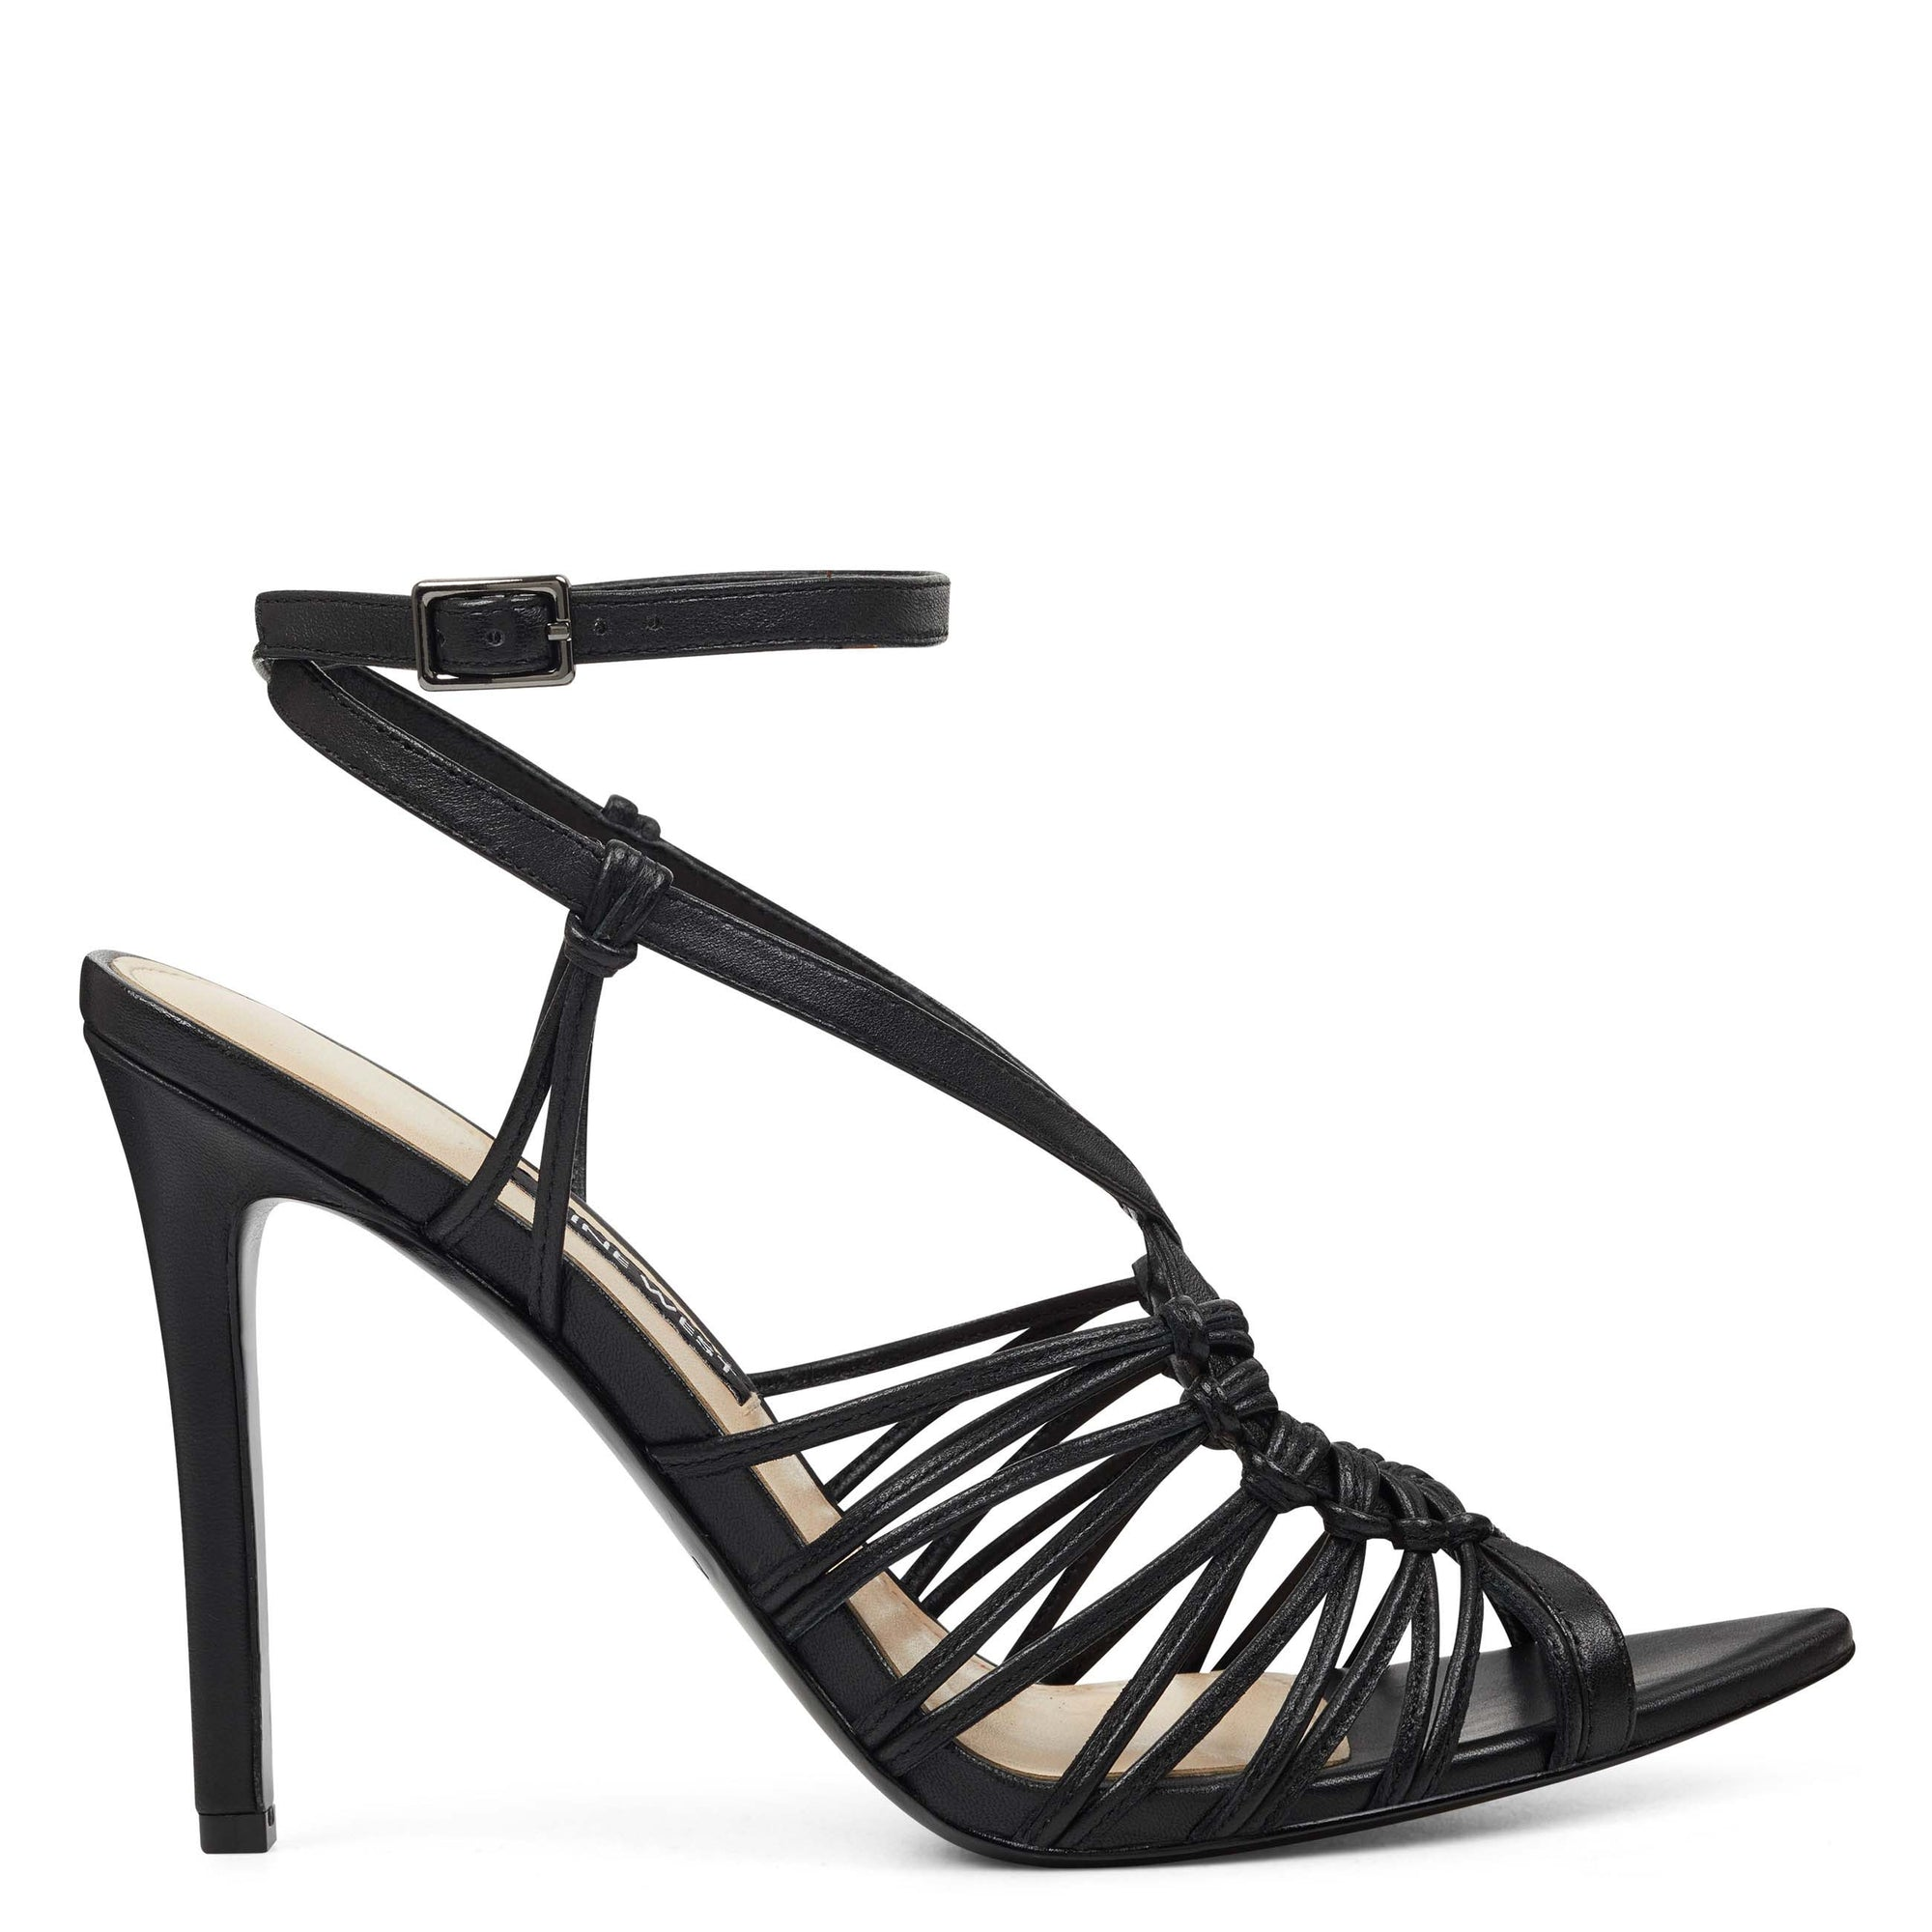 Gagnant Caged Sandals